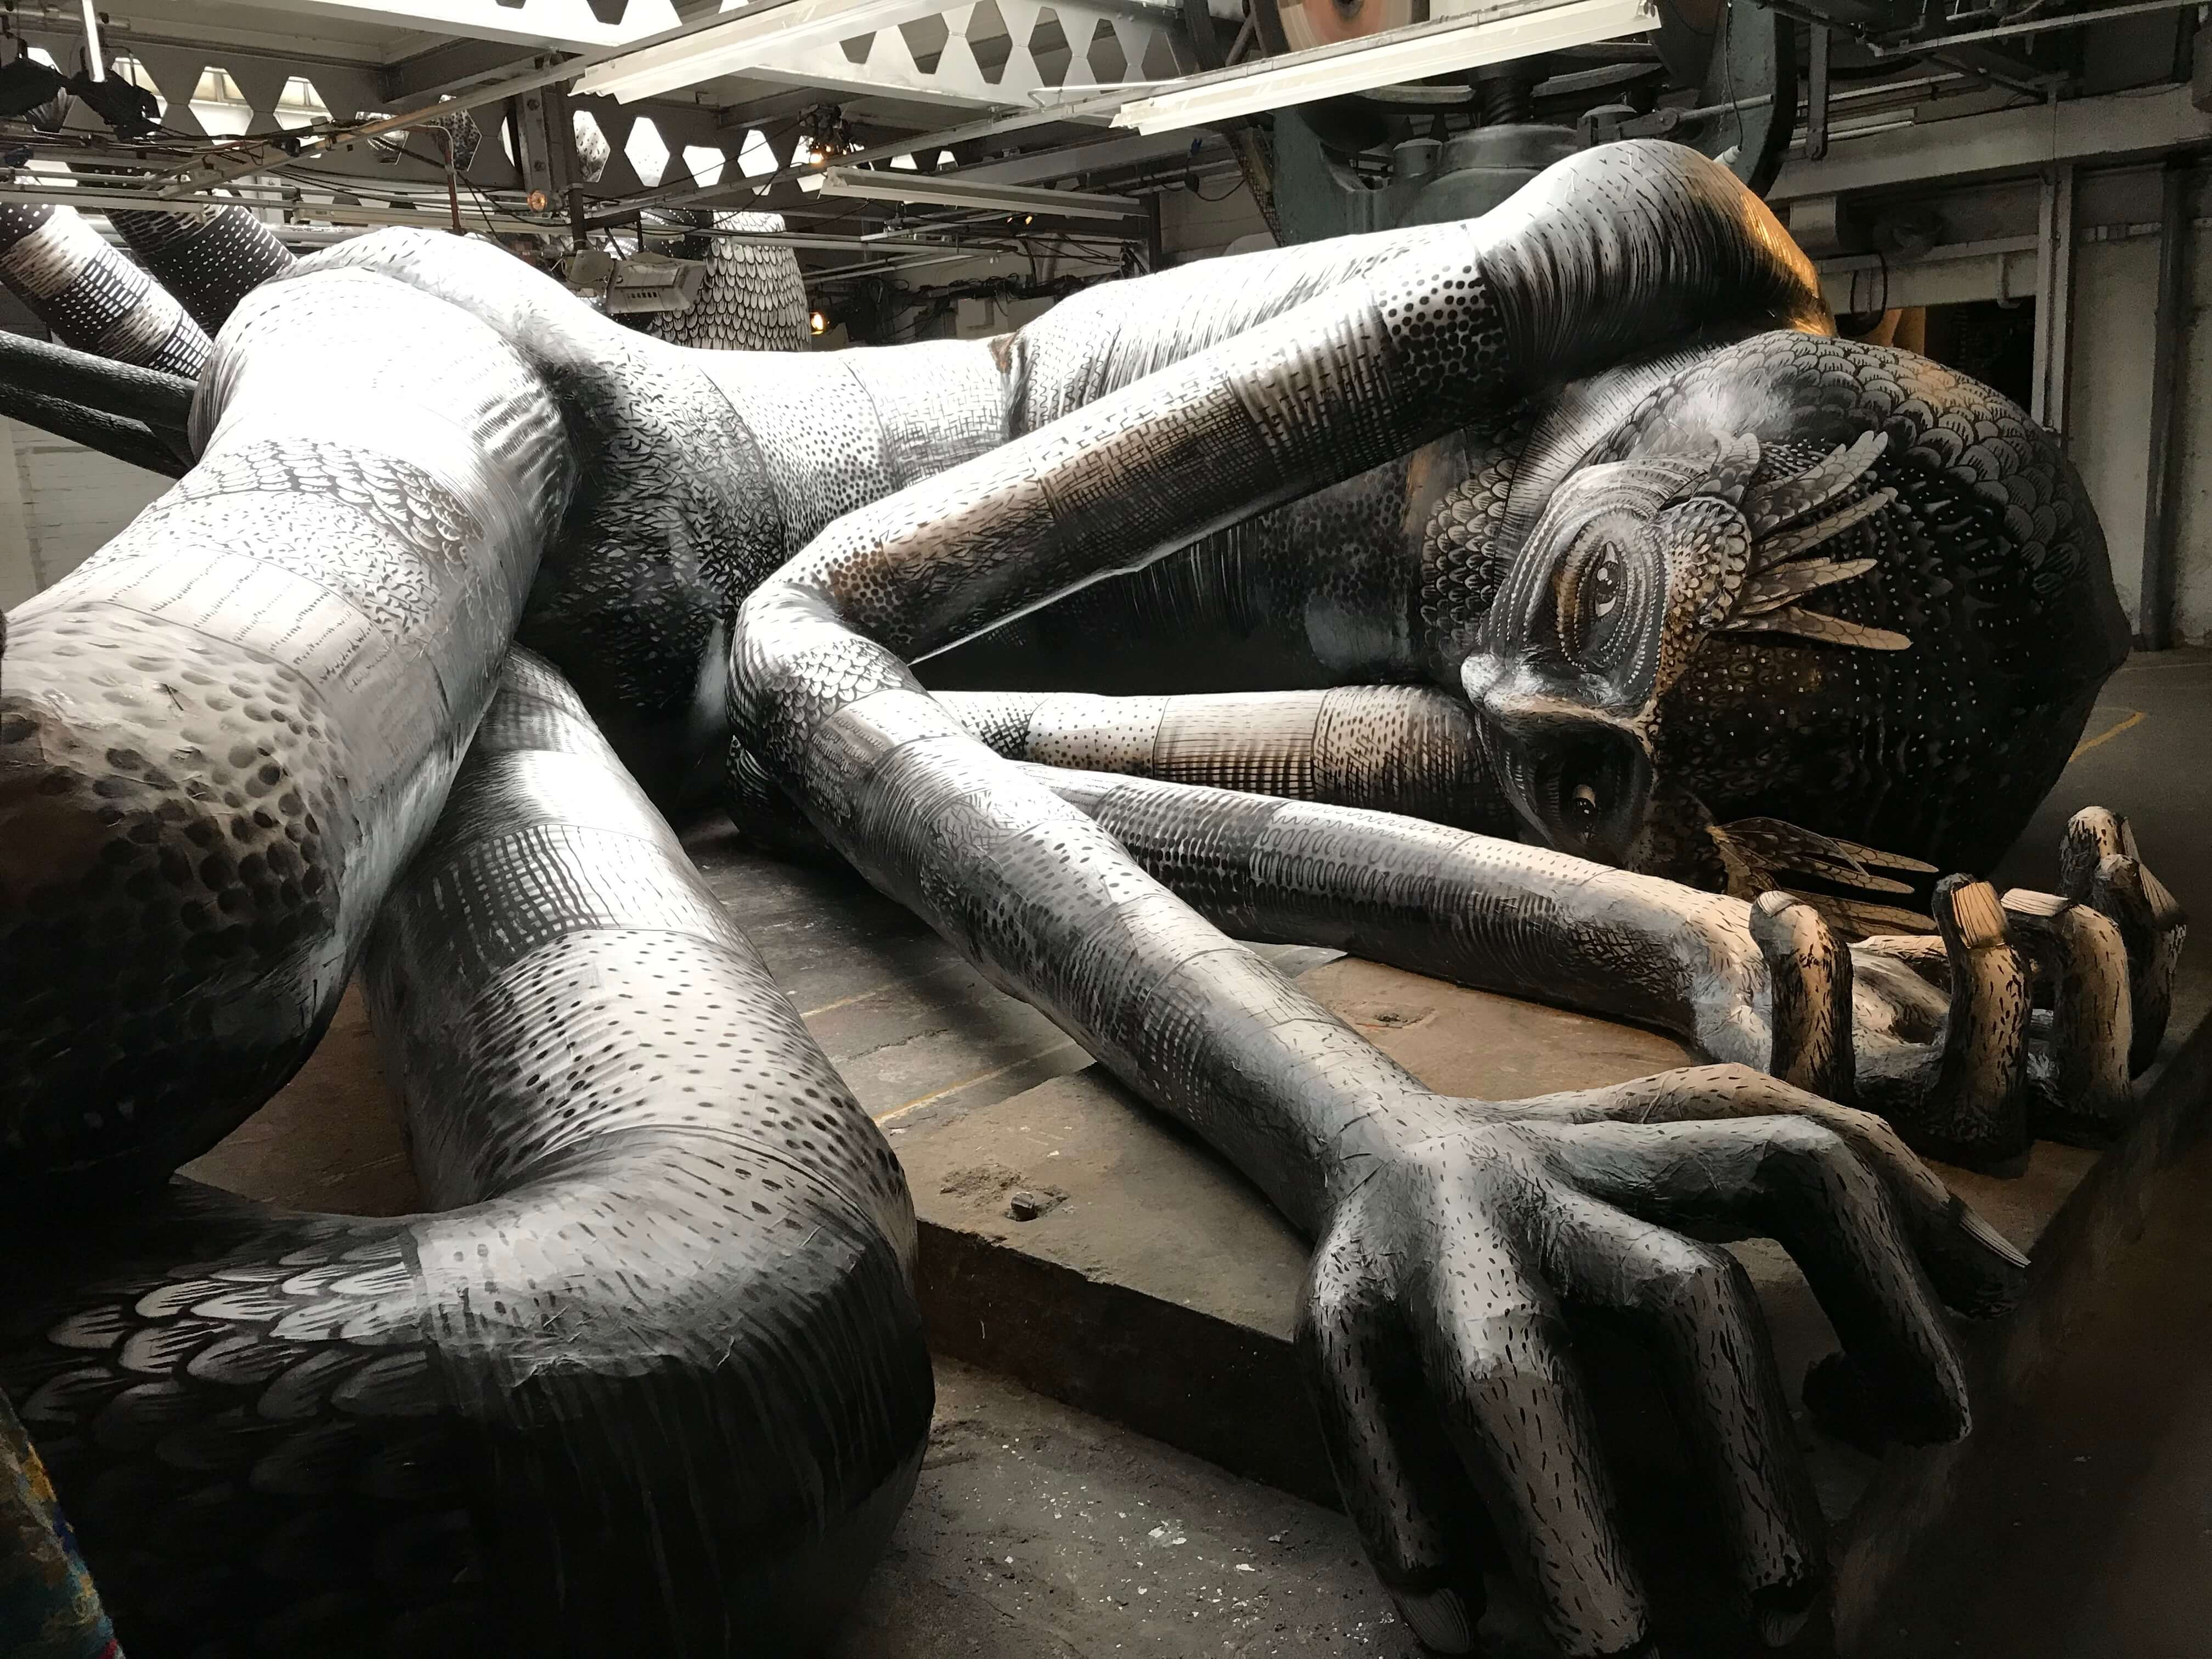 Things to do in Sheffield - Mausoleum of Giants - Phlegm